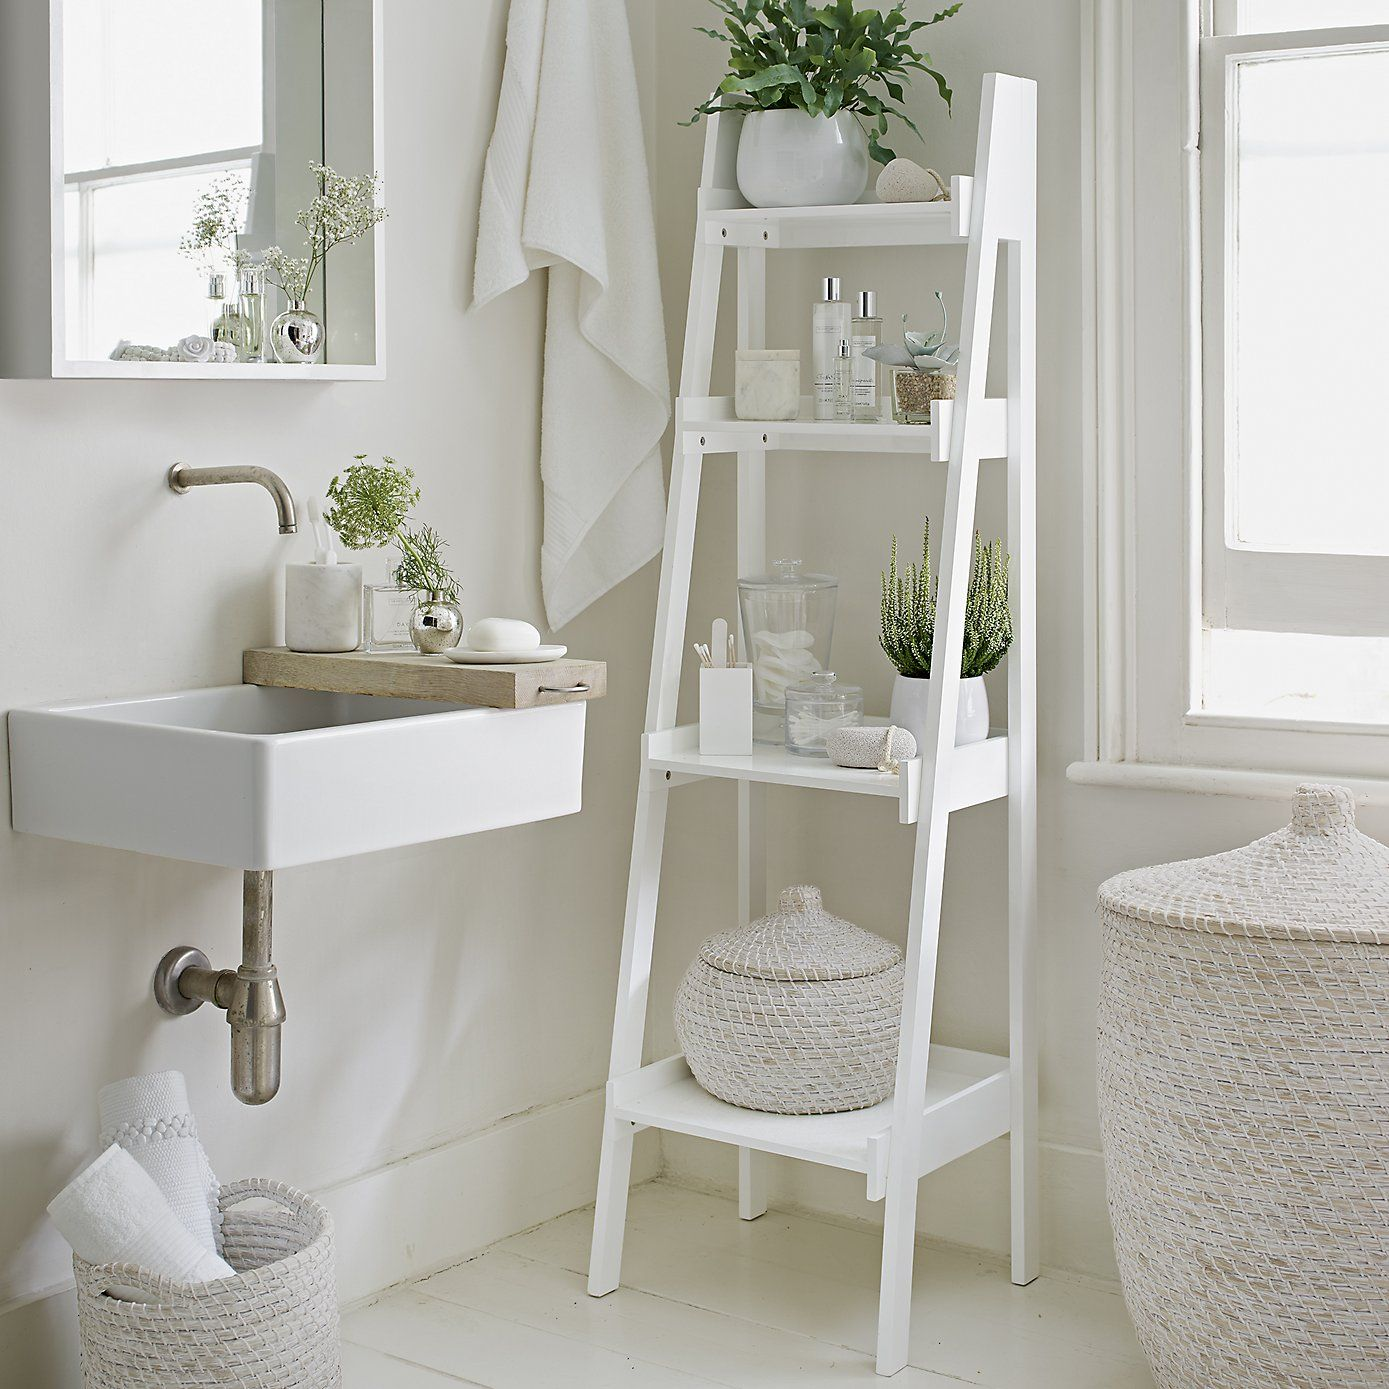 Badregal ideen über toilette a beautiful step ladder shelf for the bathroom a great way to